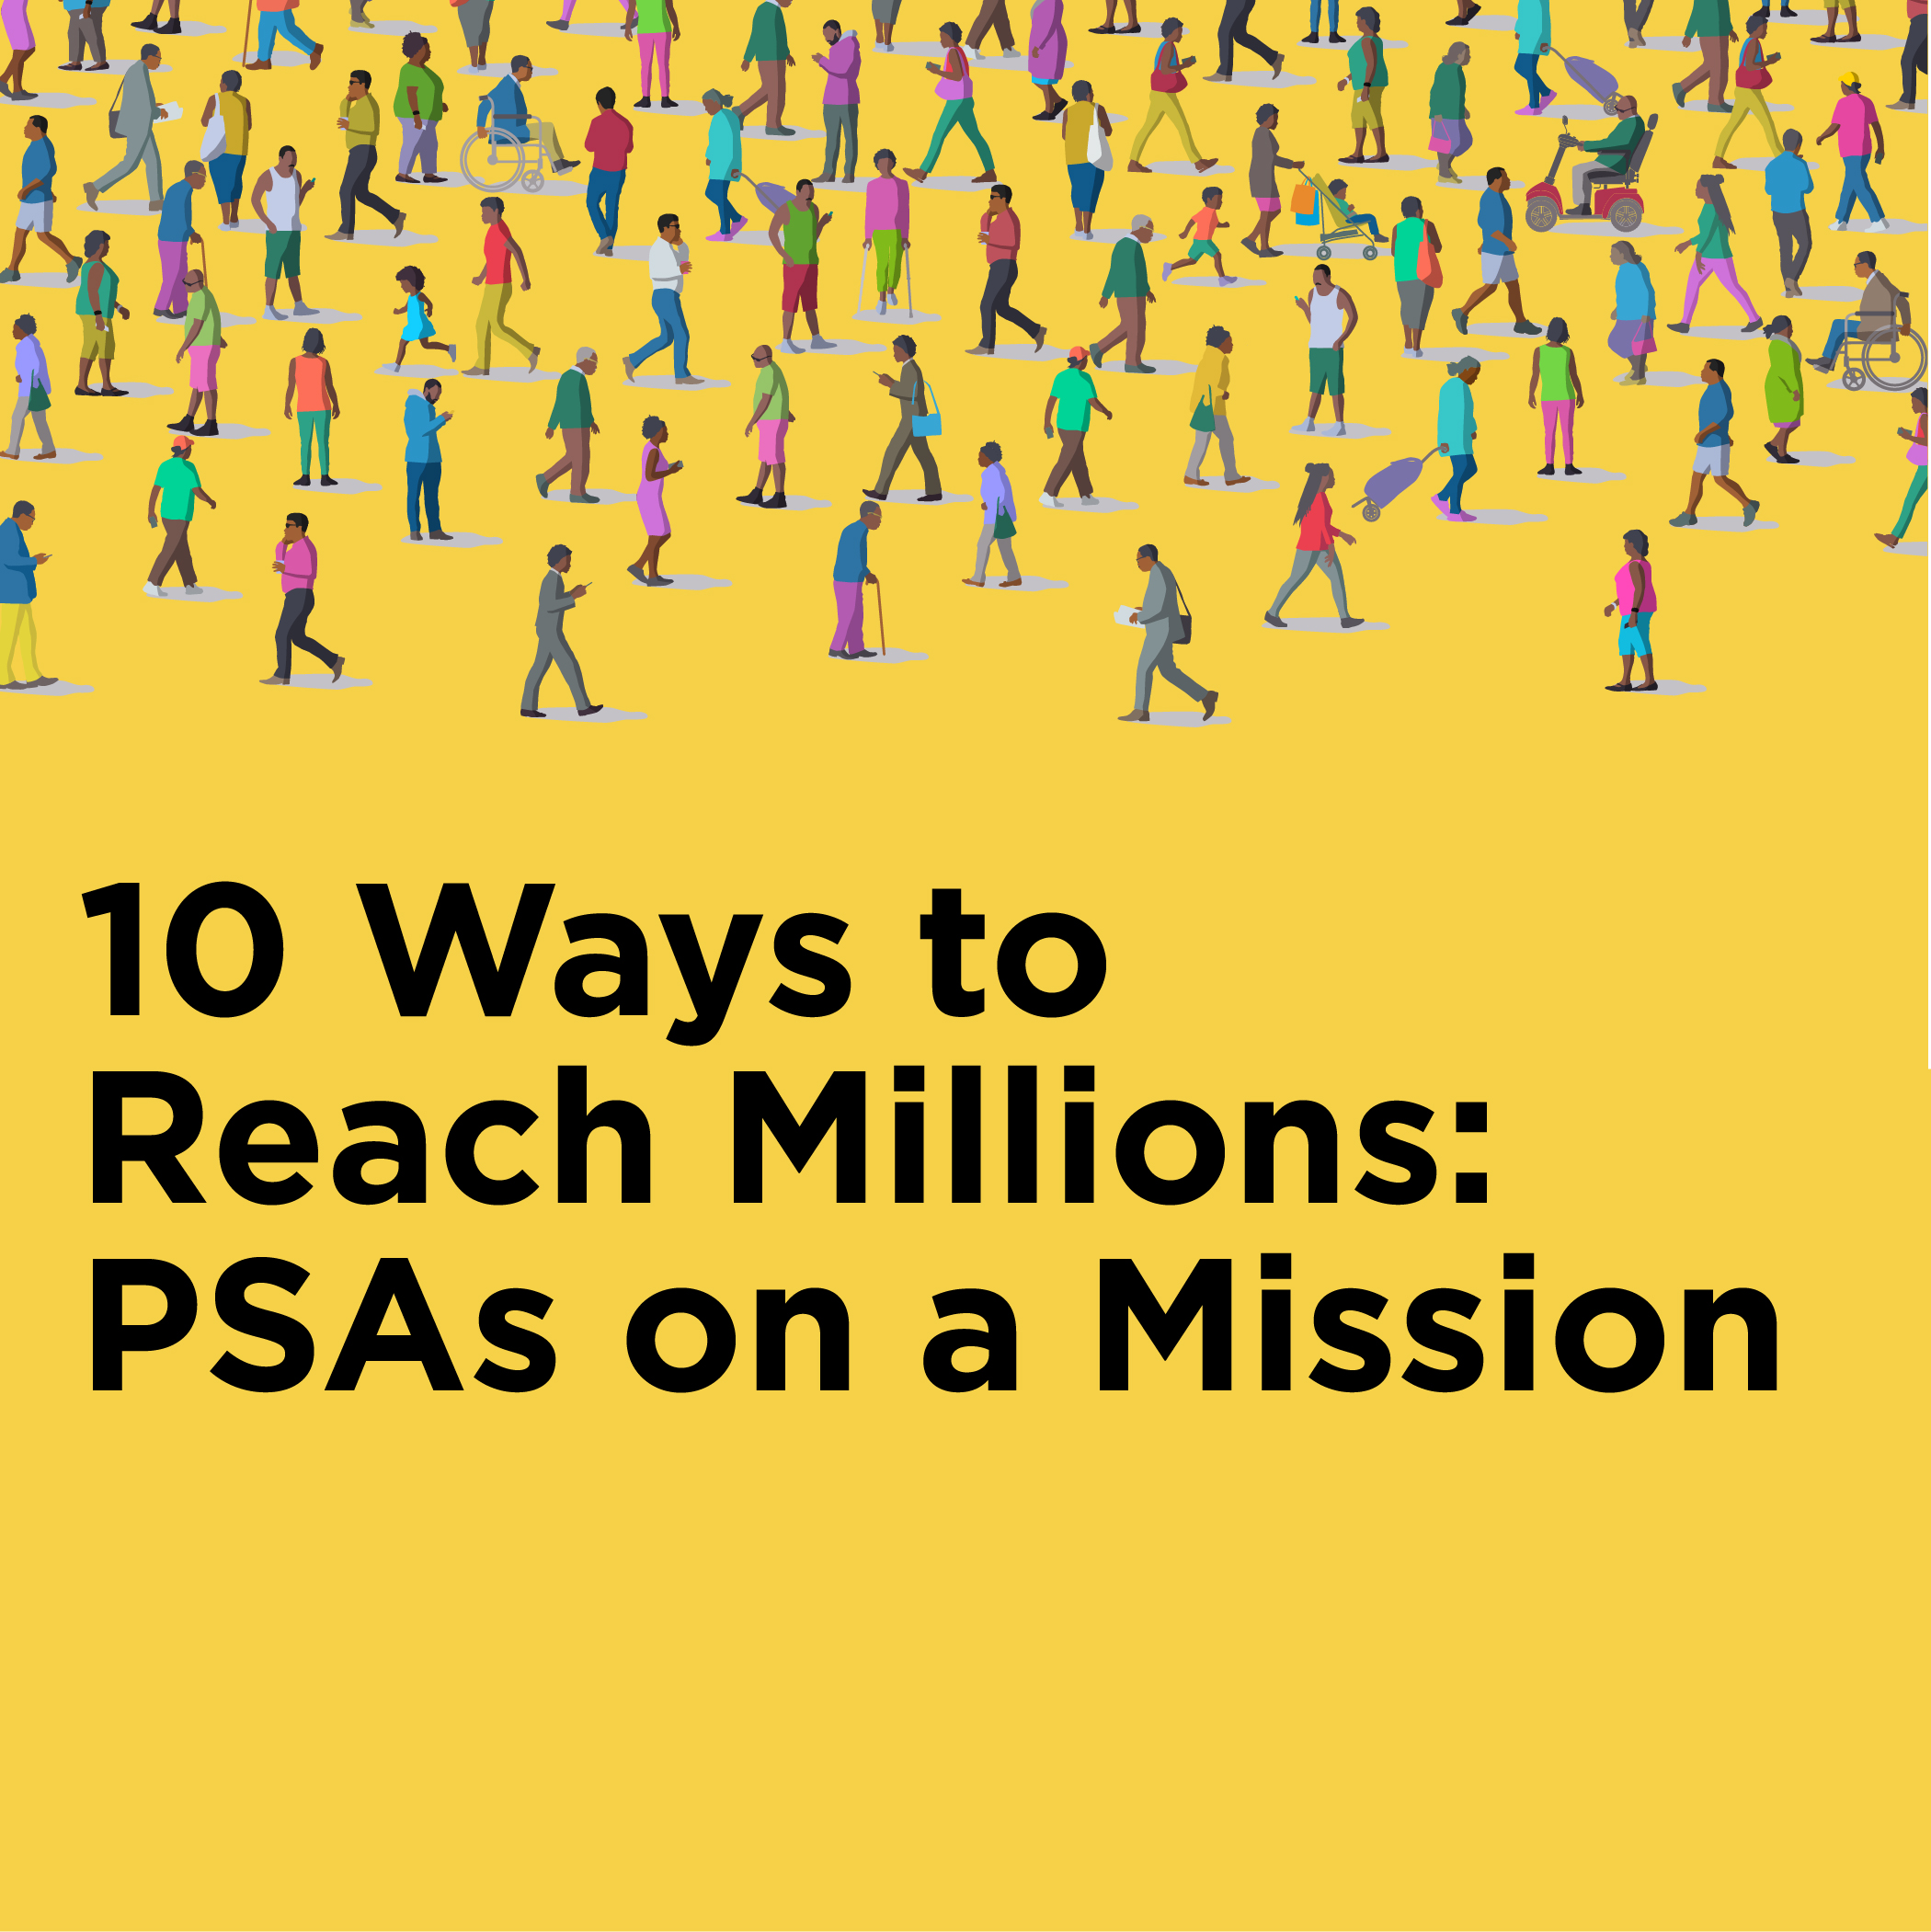 10 Ways to Reach Millions: PSAs on a Mission